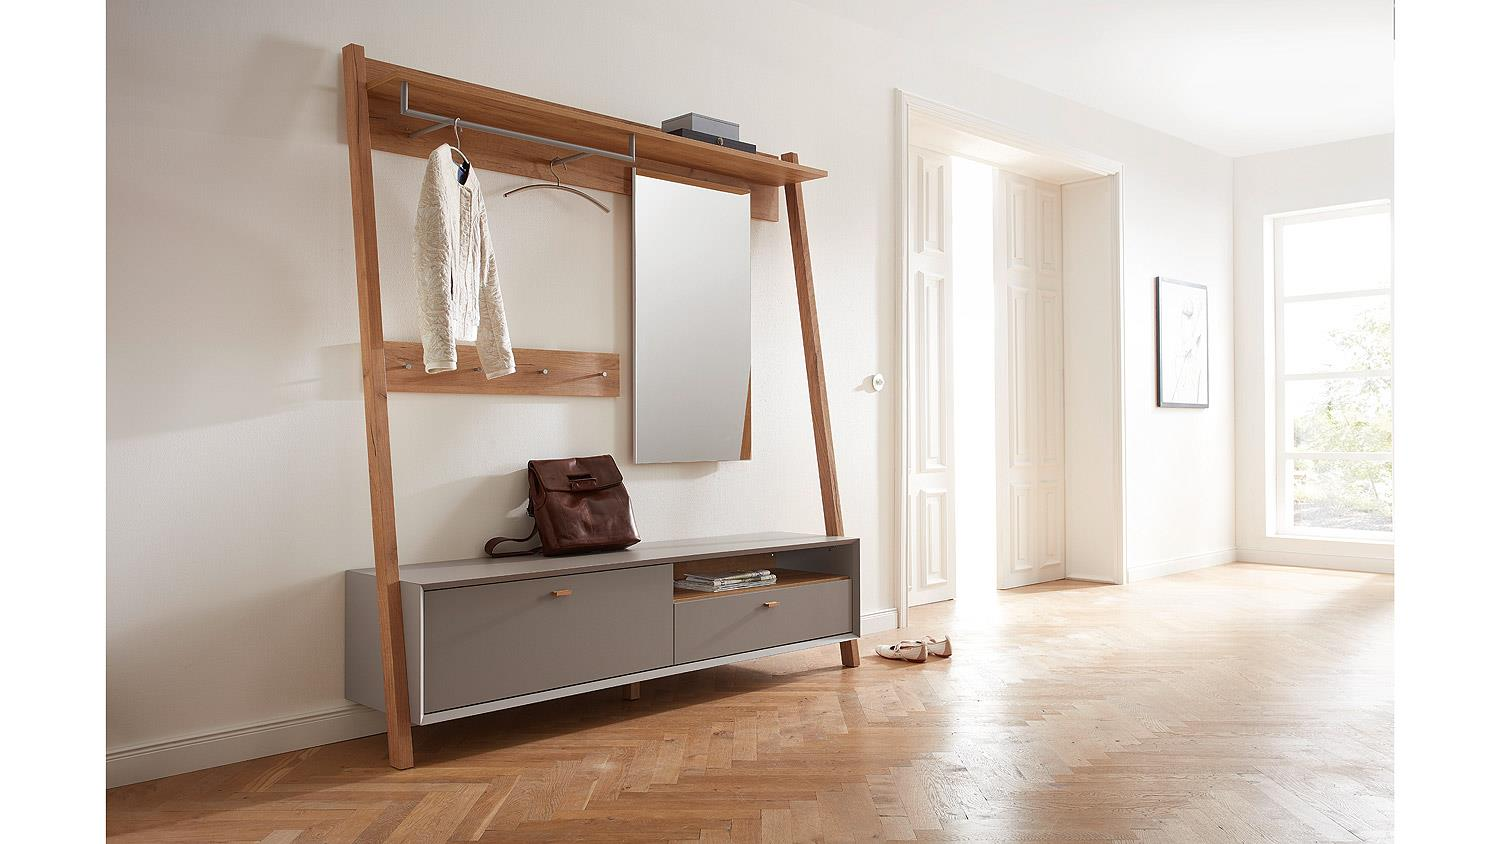 garderobe calvi flurm bel in steingrau navarra eiche von germania. Black Bedroom Furniture Sets. Home Design Ideas